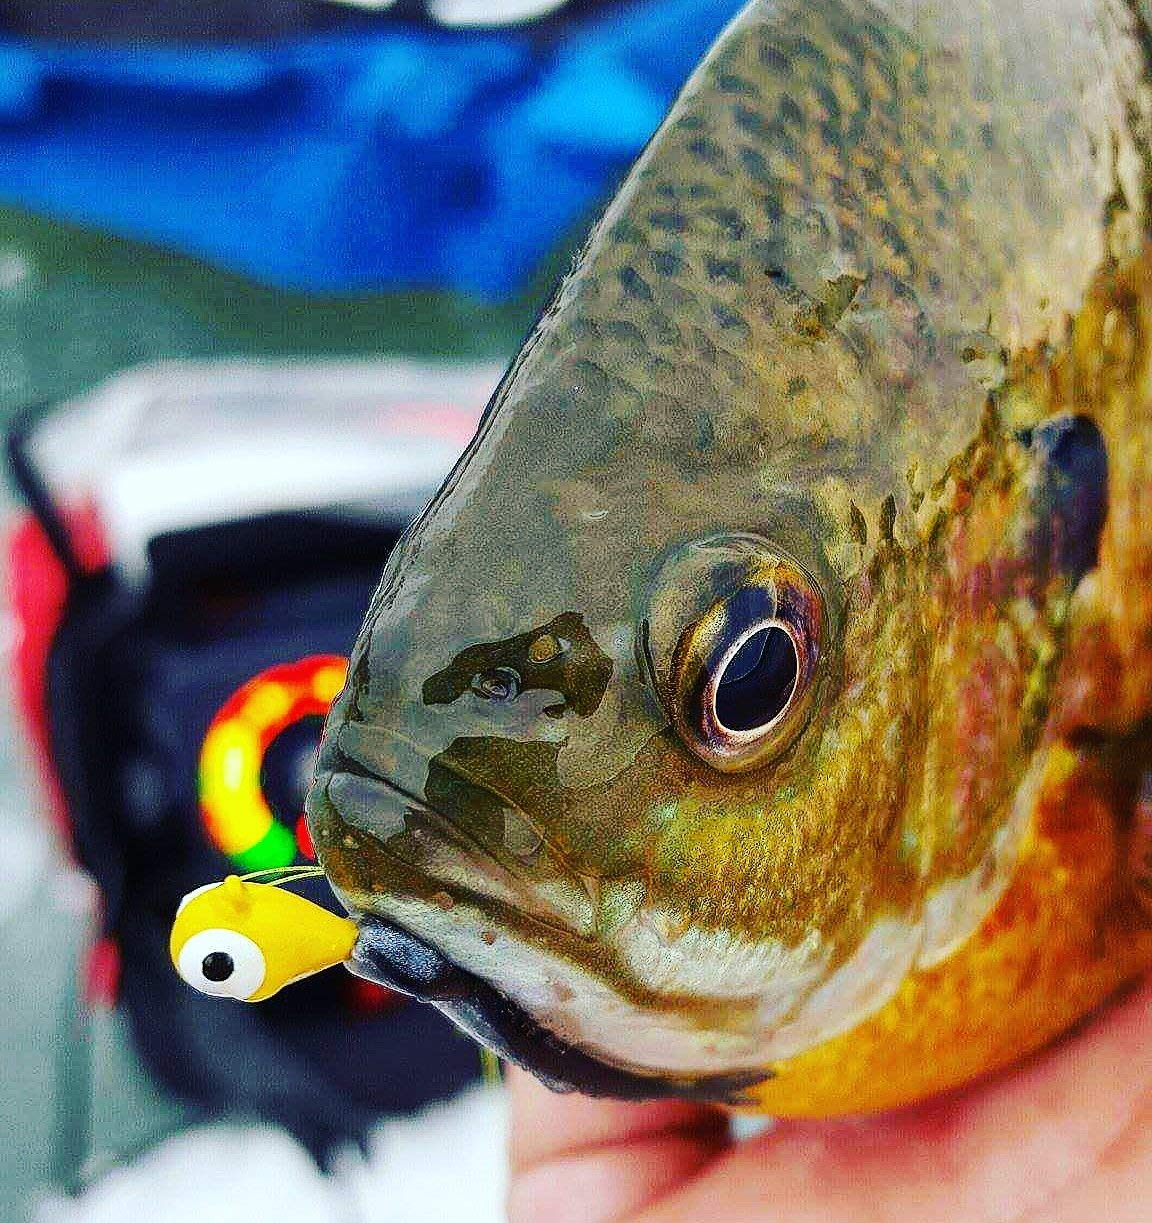 Crappie with a yellow jig in its mouth.